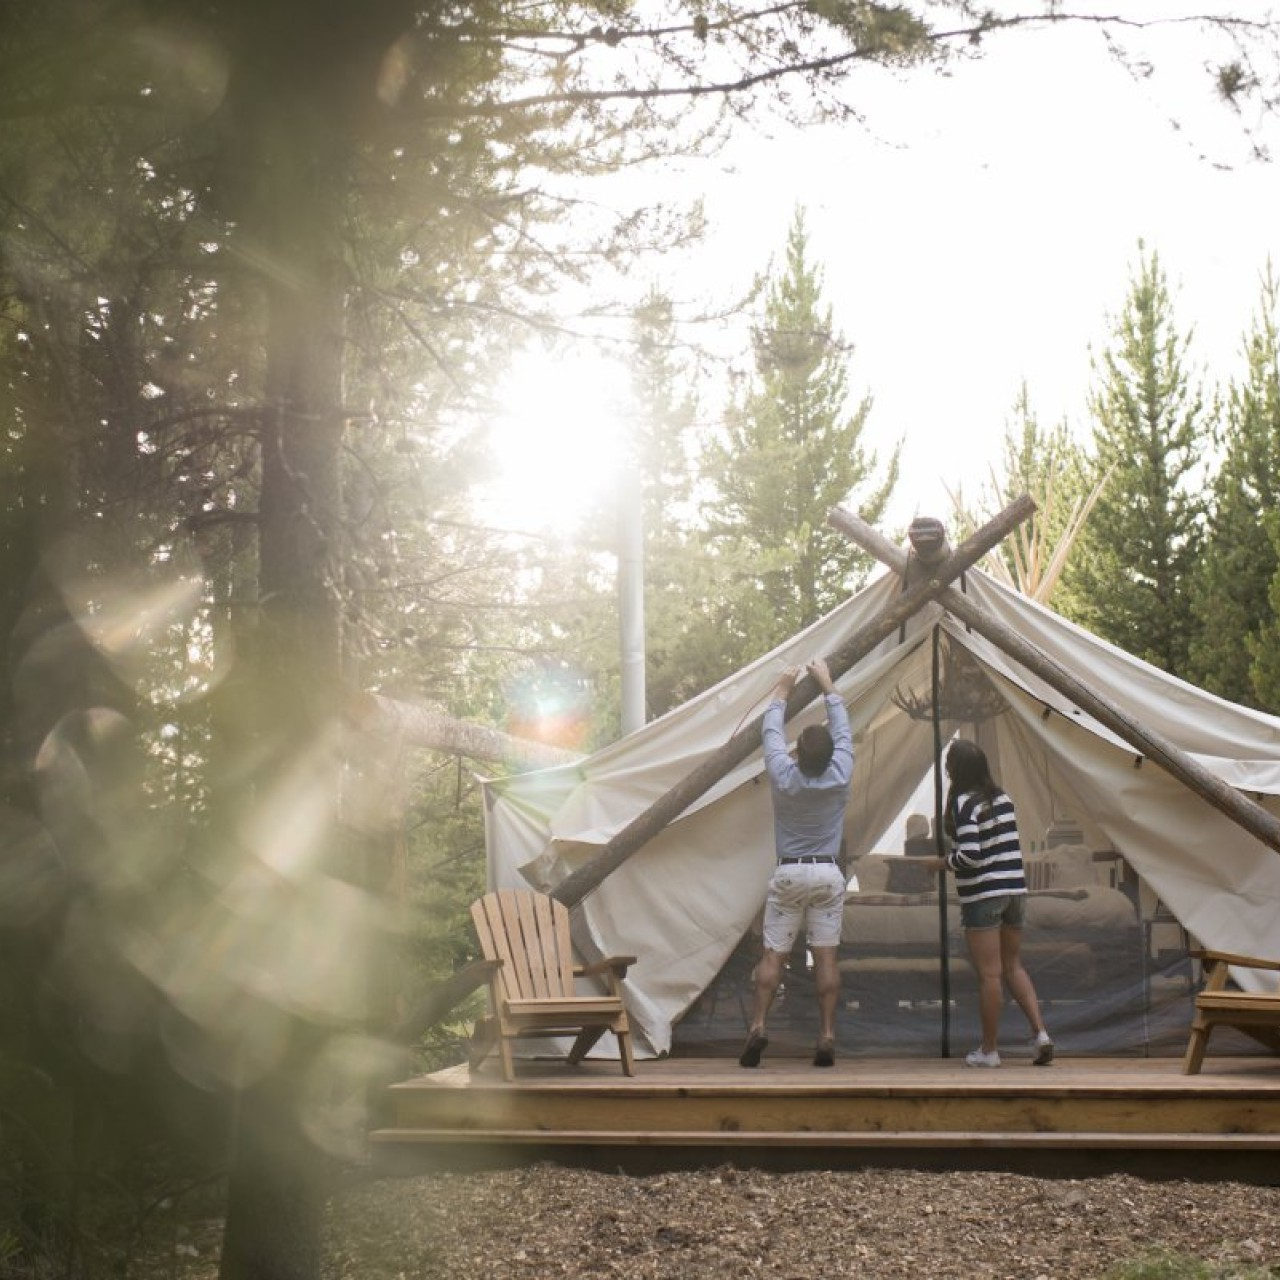 Are luxury camping - or 'glamping' - retreats the future of